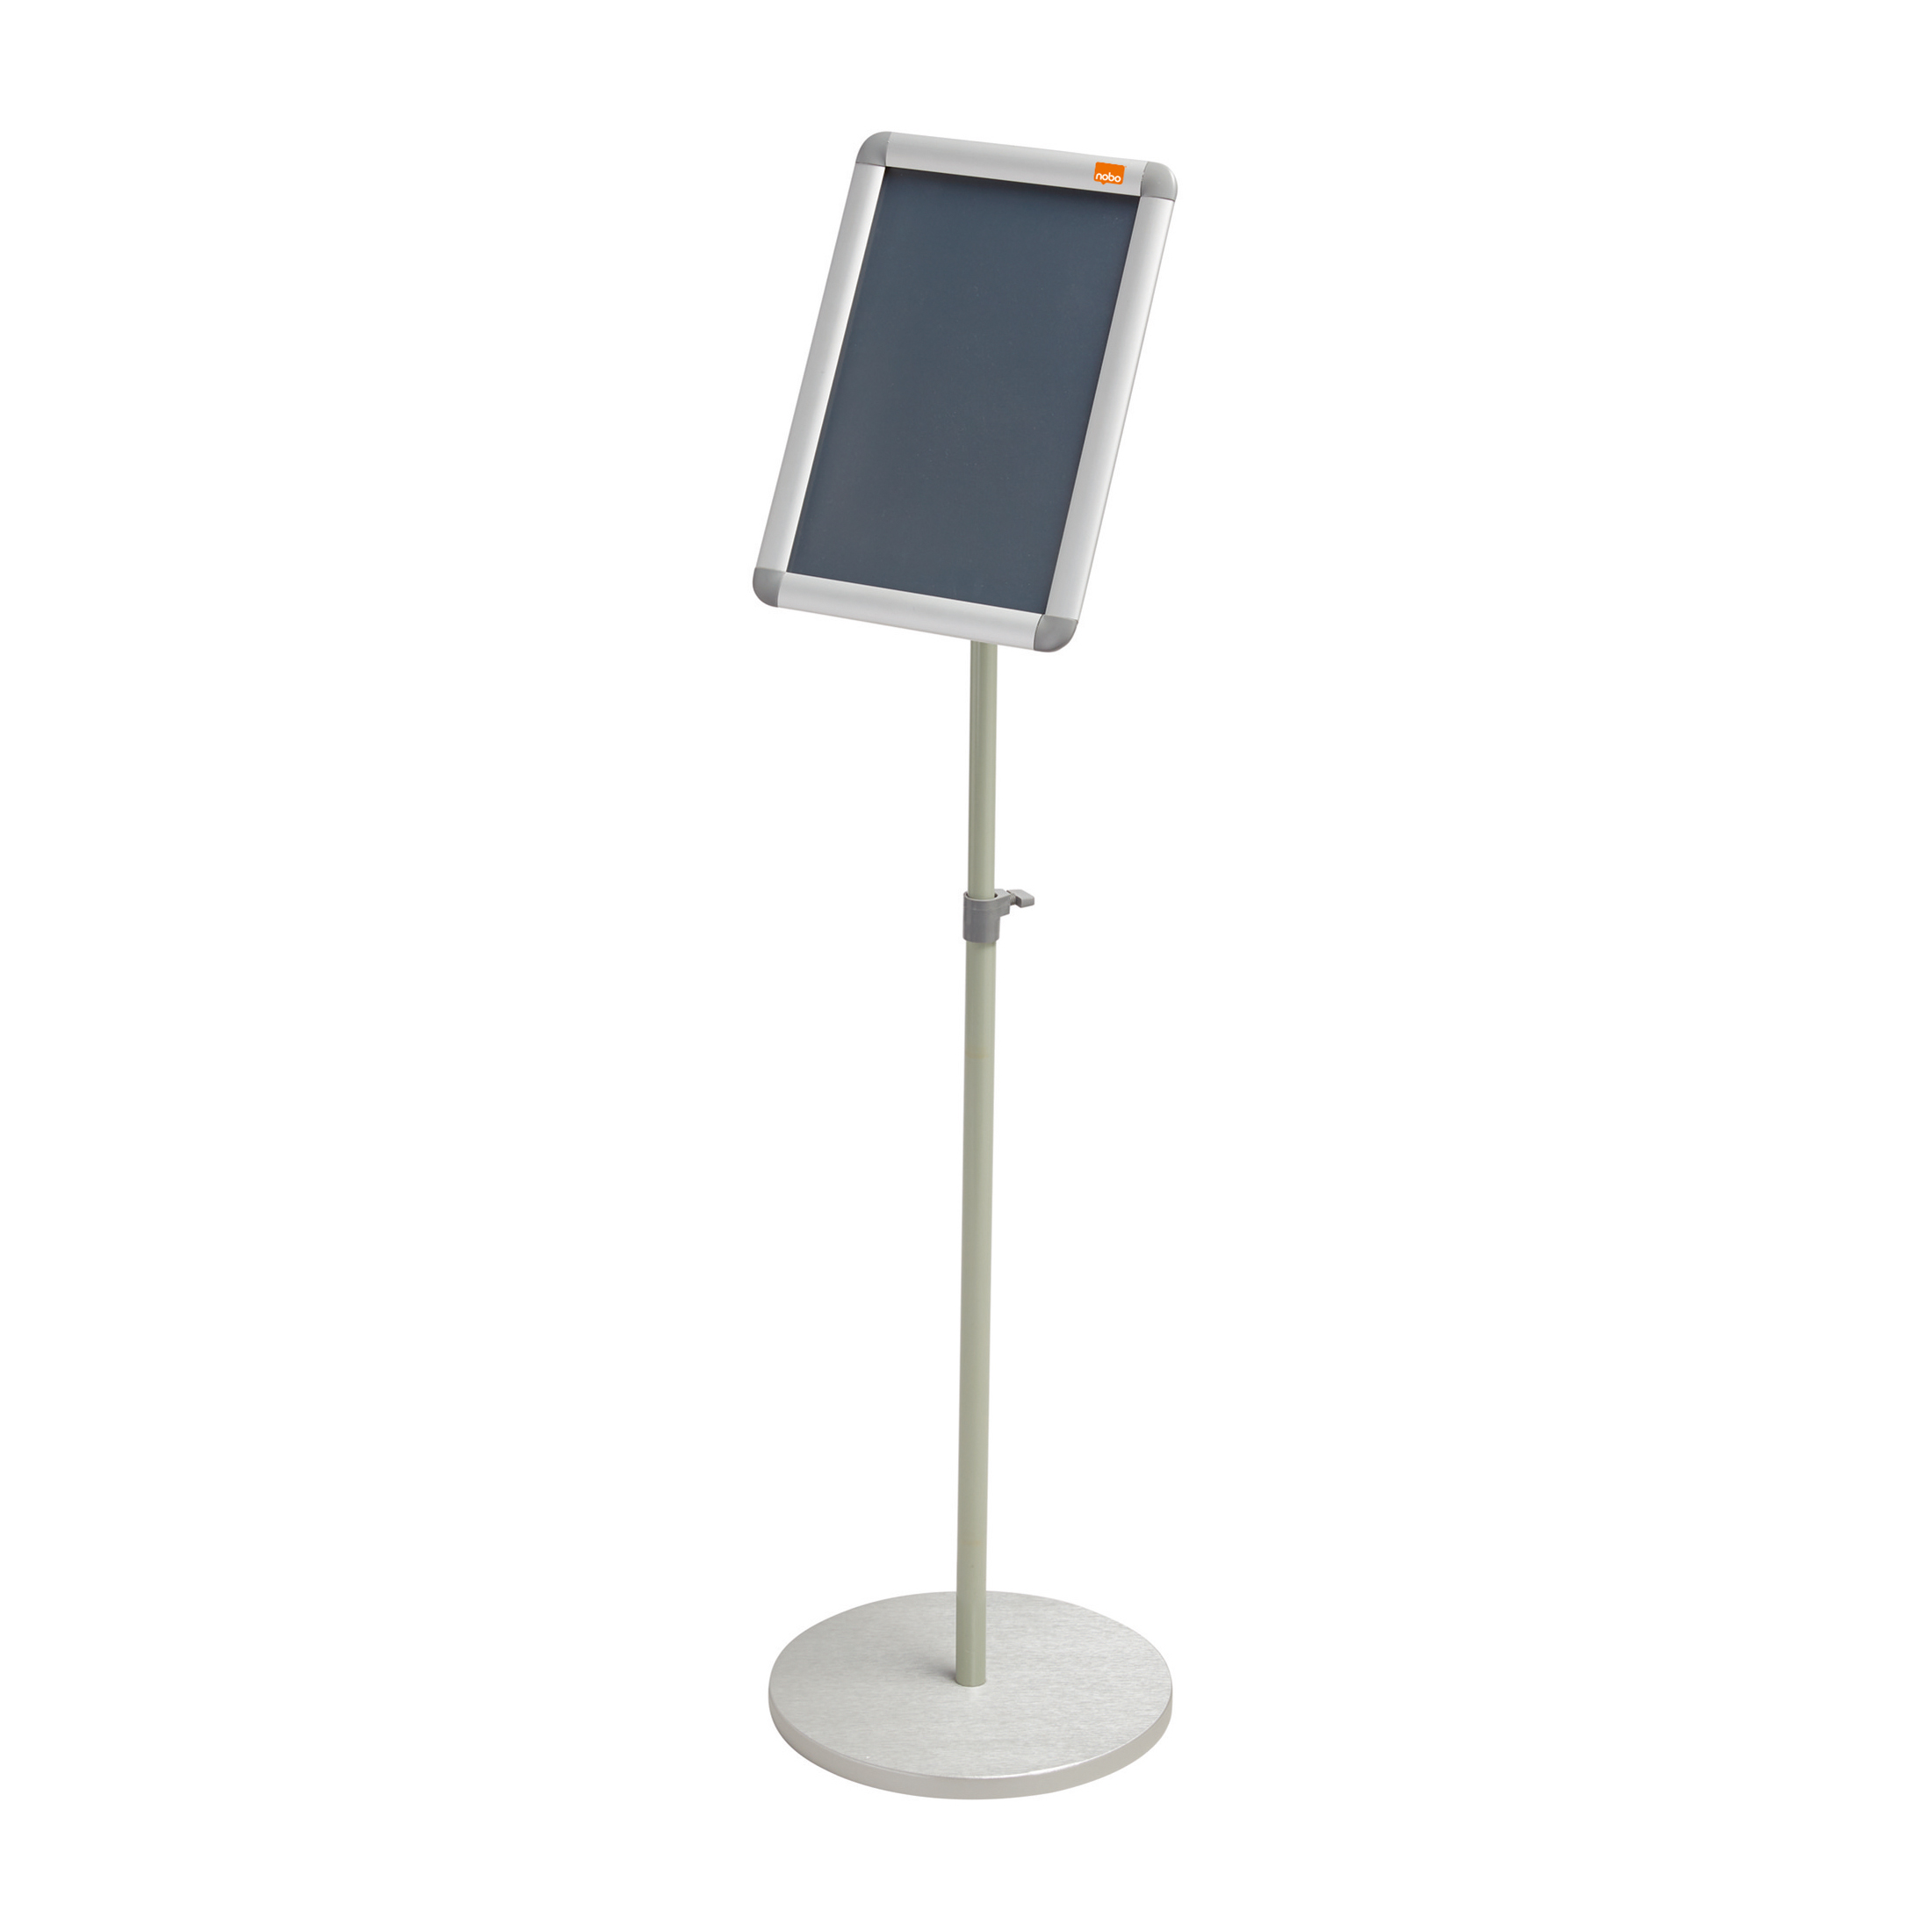 Certificate / Photo Frames Nobo Snap Frame Display Stand for A4 Documents Adjustable Height 950-1470mm Silver Ref 1902383